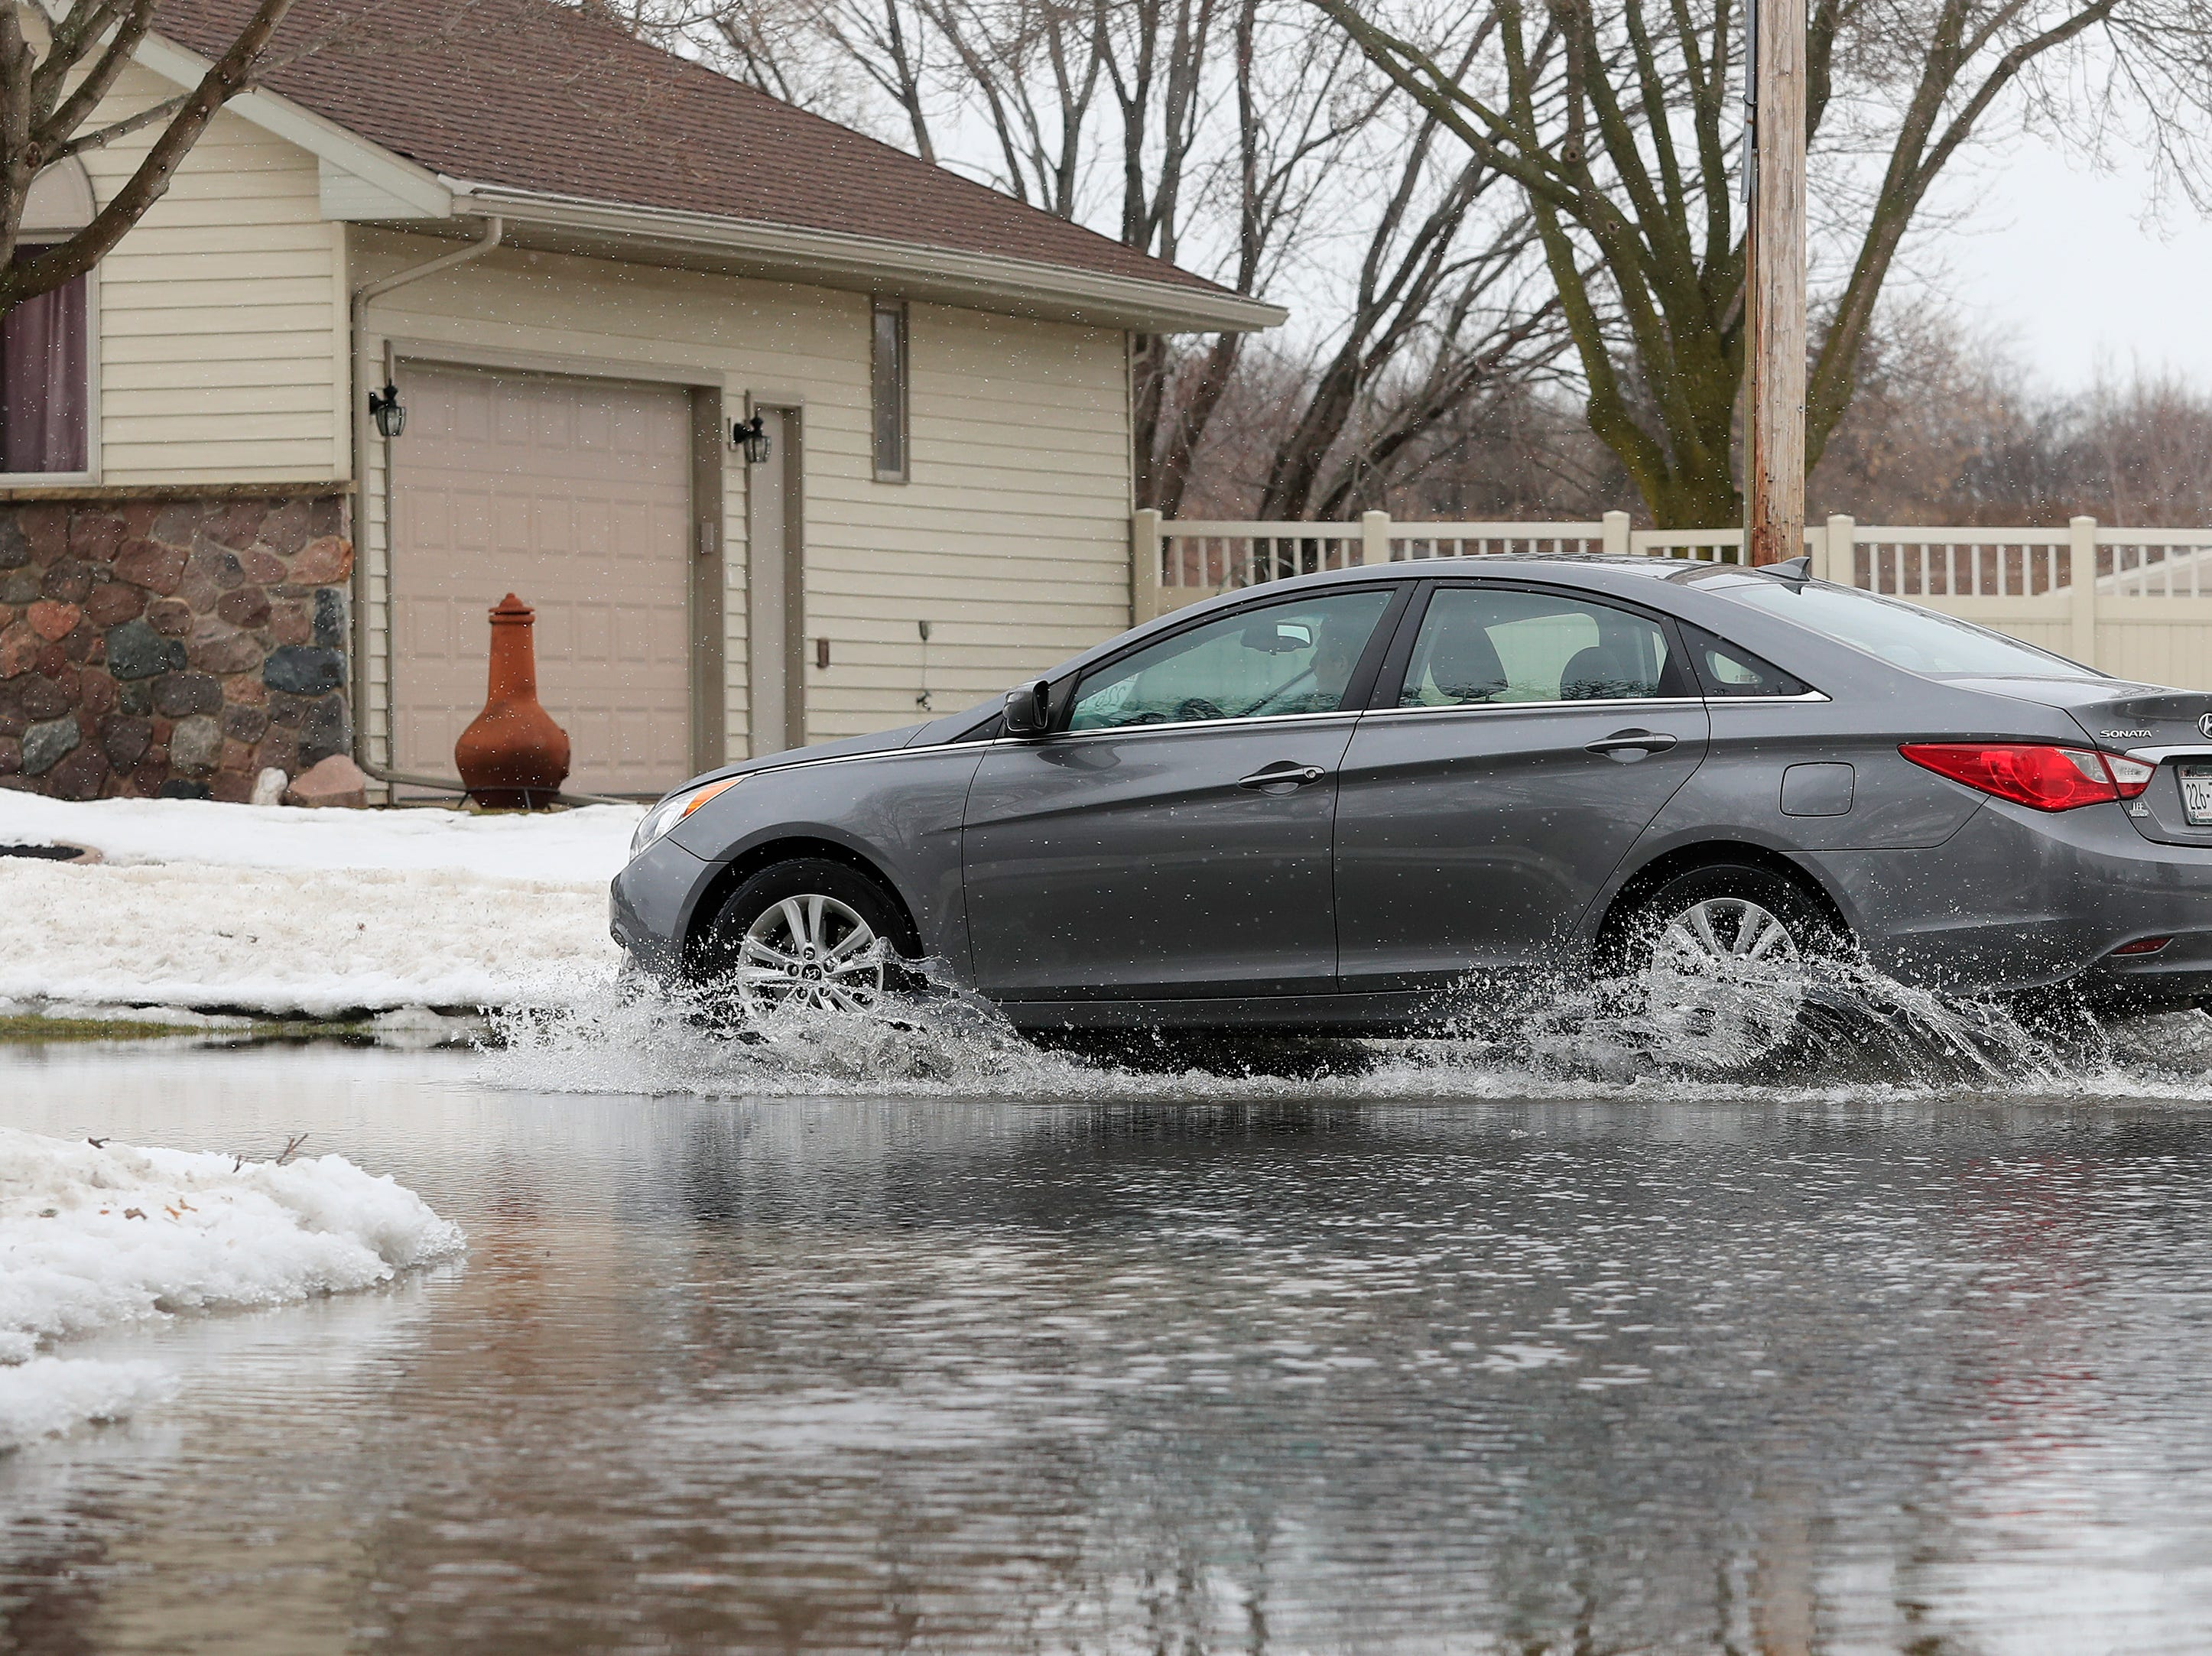 A motorist drives through a partially flooded intersection on Friday, March 15, 2019 in Allouez, Wis.